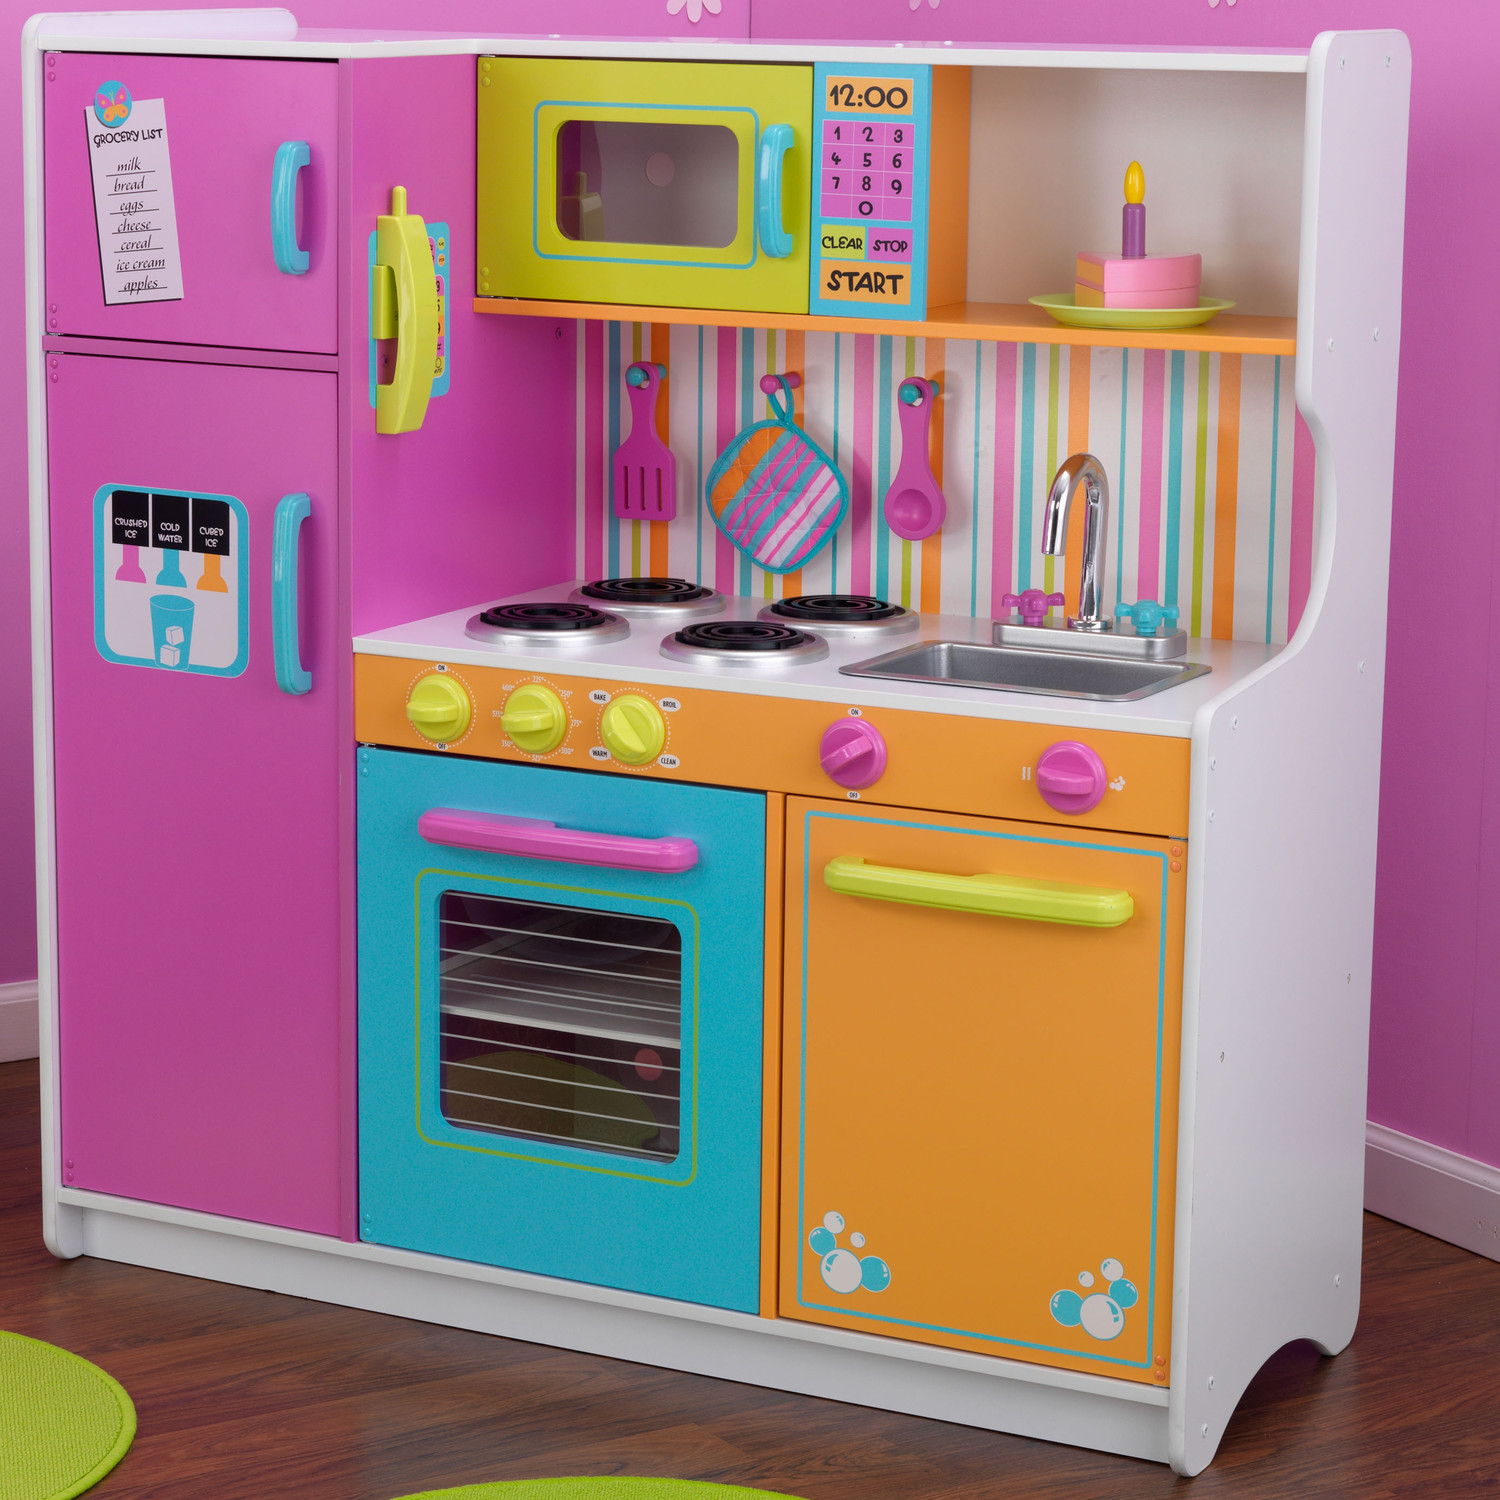 Kitchen Set For Sale: Indigo Canada Toy Sale: Save 59% Off KidKraft Deluxe